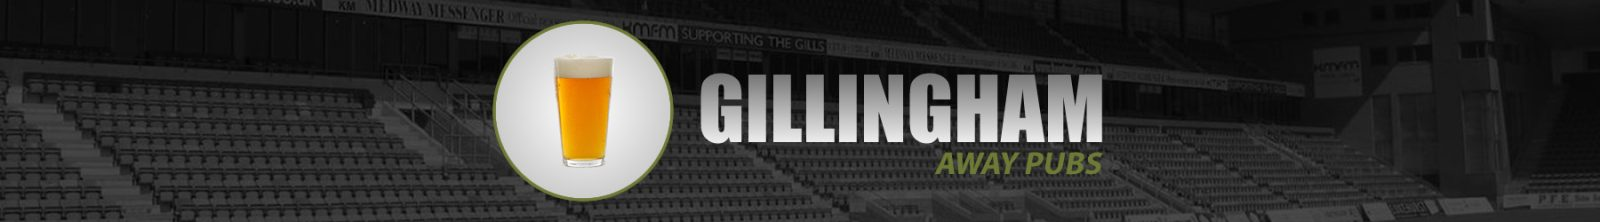 Gillingham Away Pubs